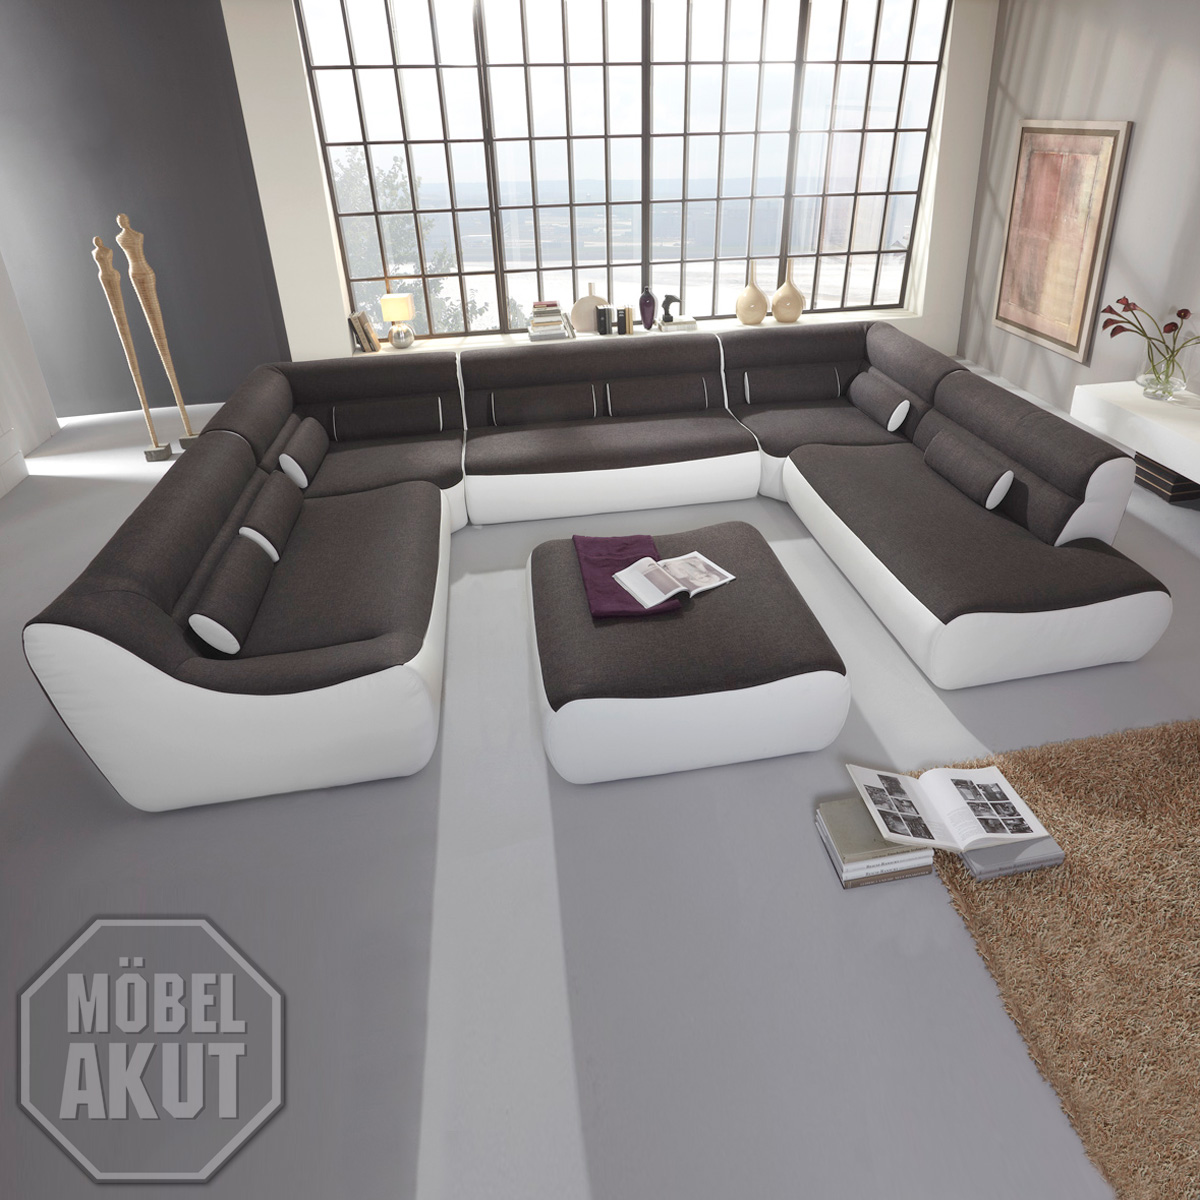 wohnlandschaft devil sofa ecksofa bigsofa megasofa in anthrazit wei neu ebay. Black Bedroom Furniture Sets. Home Design Ideas